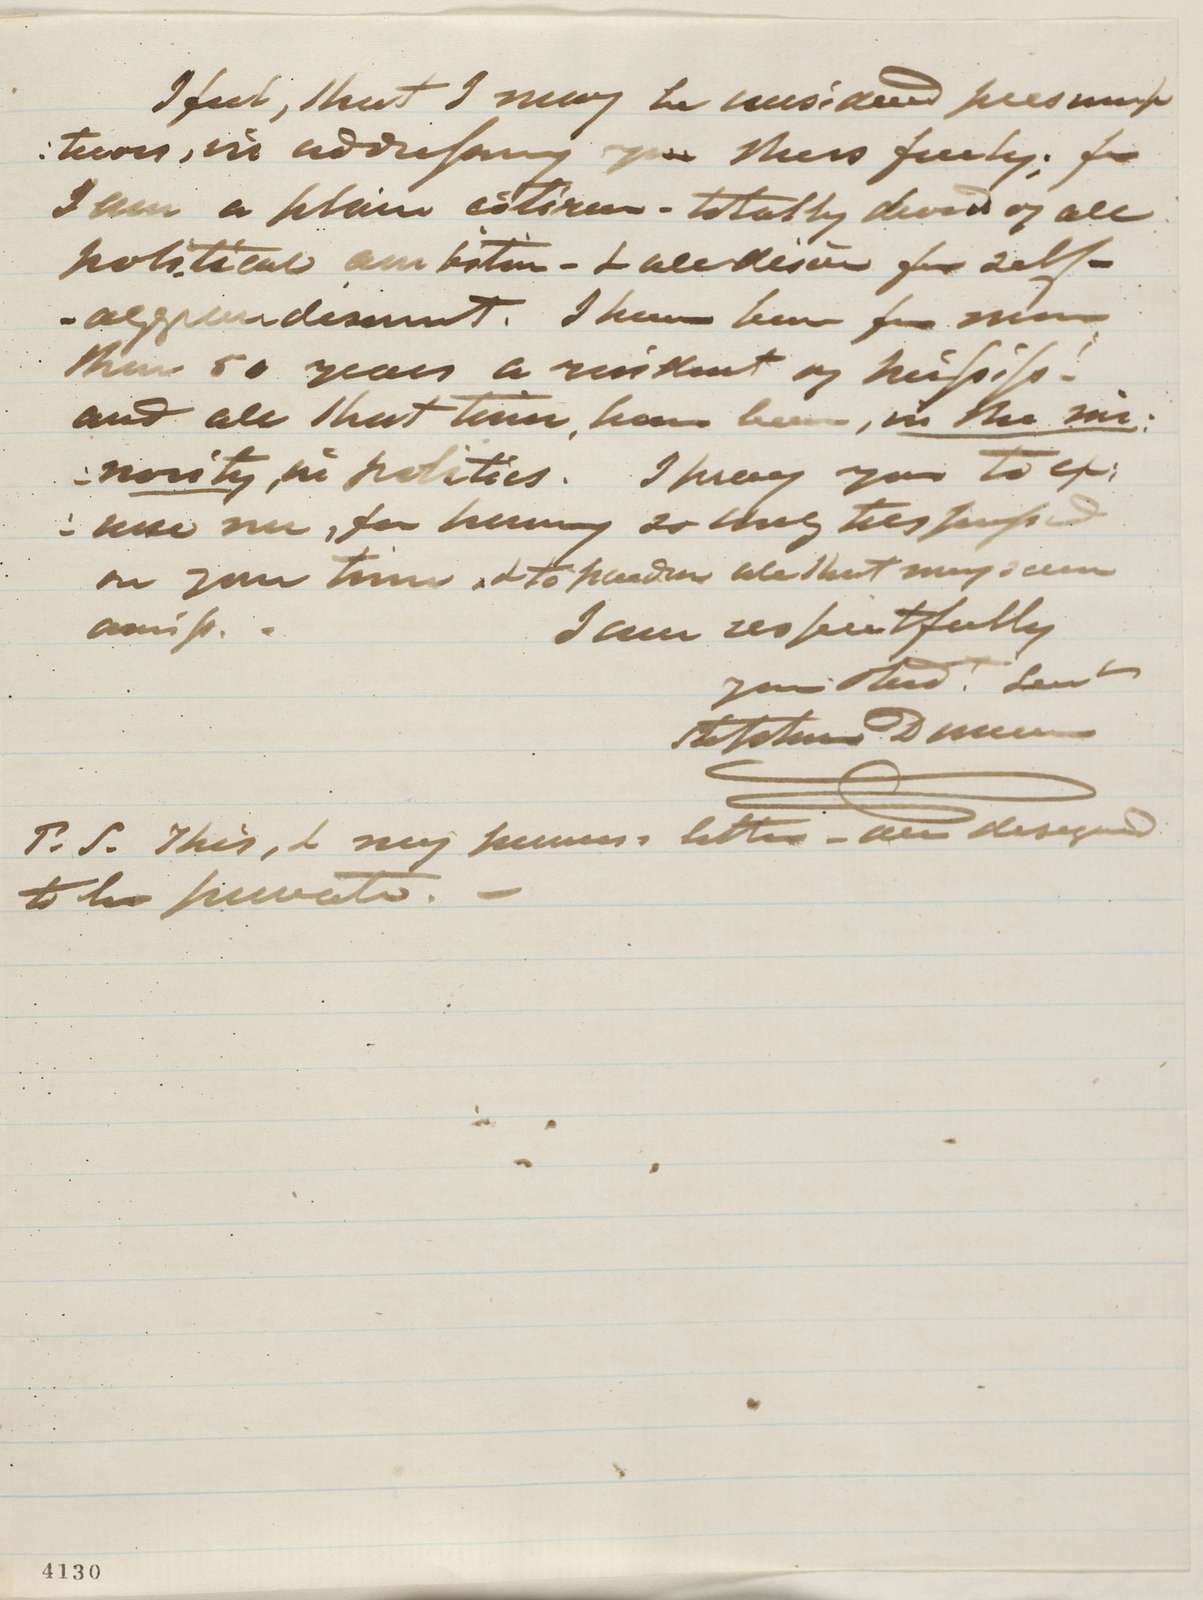 Abraham Lincoln papers: Series 1. General Correspondence. 1833-1916: Stephen Dunn to Abraham Lincoln, Wednesday, October 24, 1860 (Cabinet appointments)